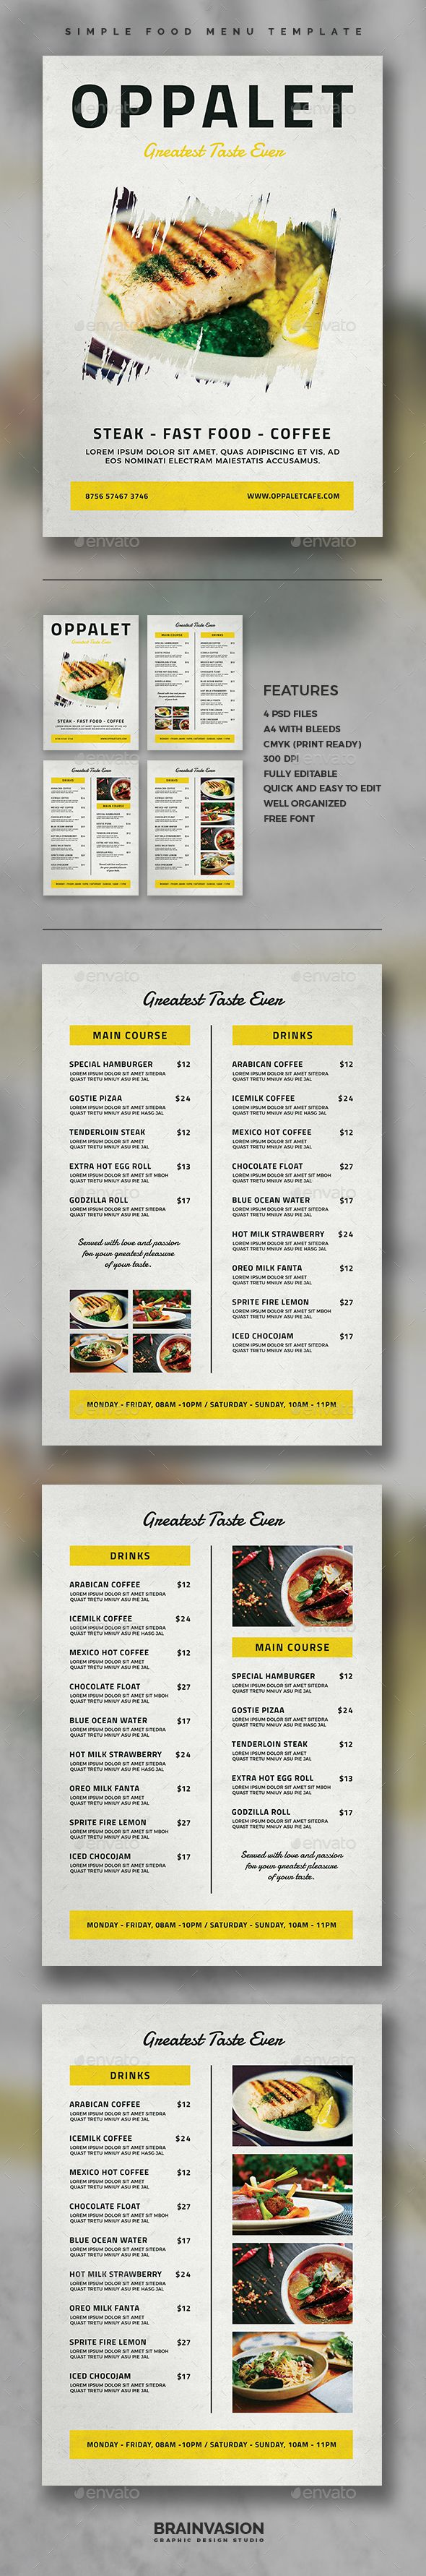 simple html menu template - 17 best ideas about menu templates on pinterest food